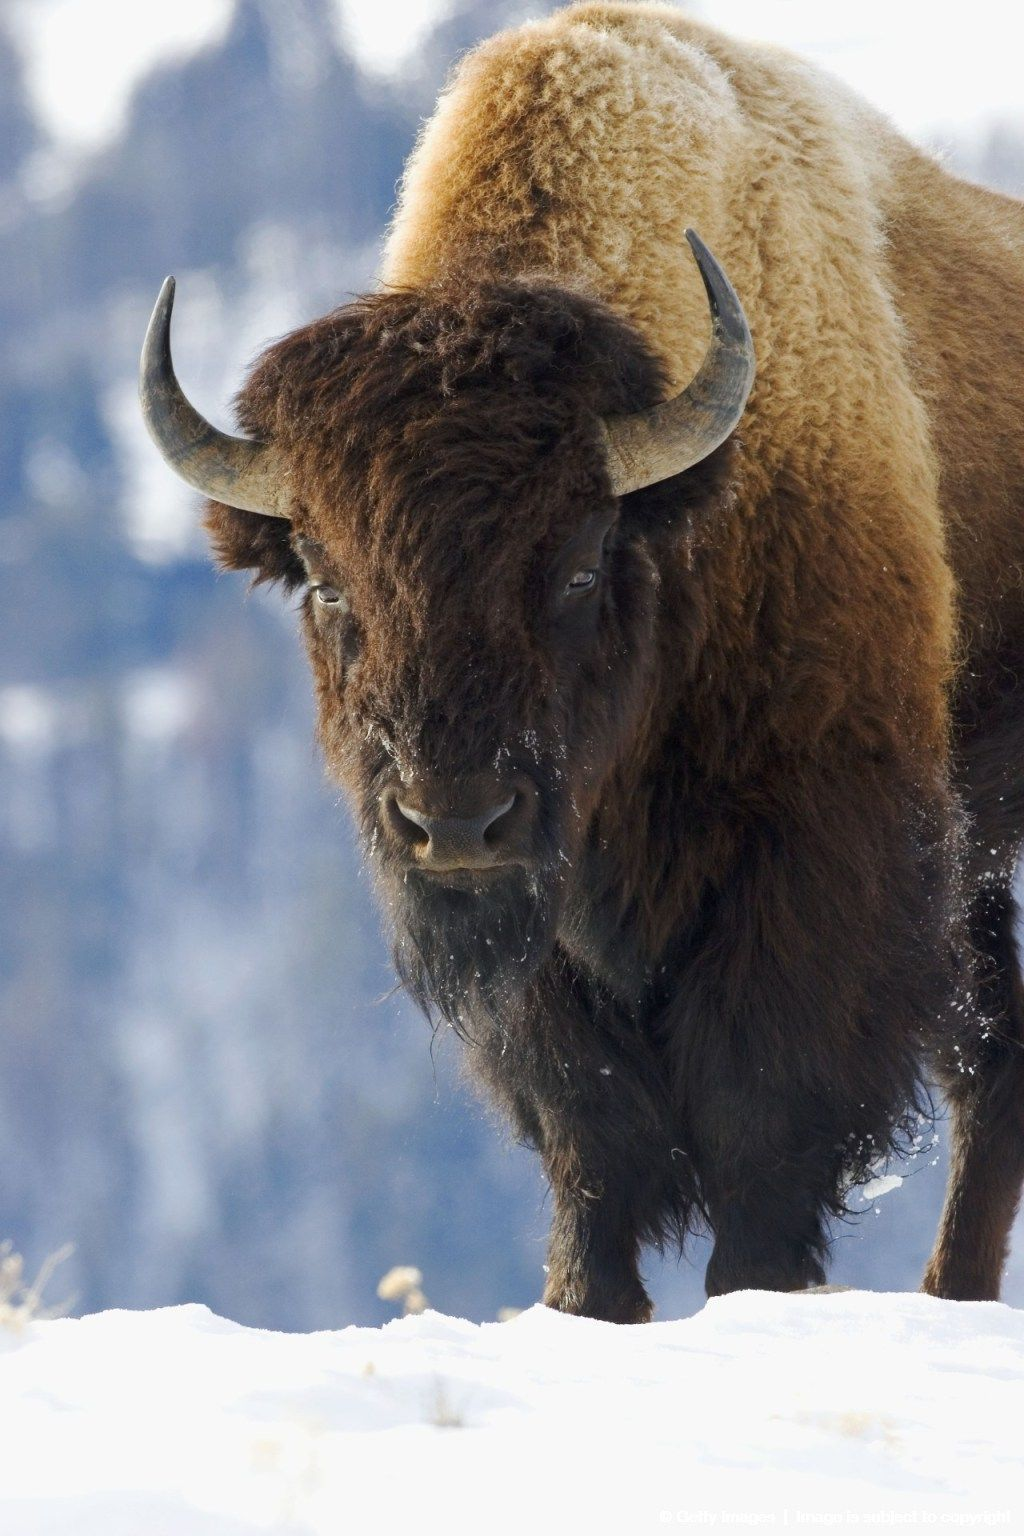 Image detail for An American Bison or buffalo in the w